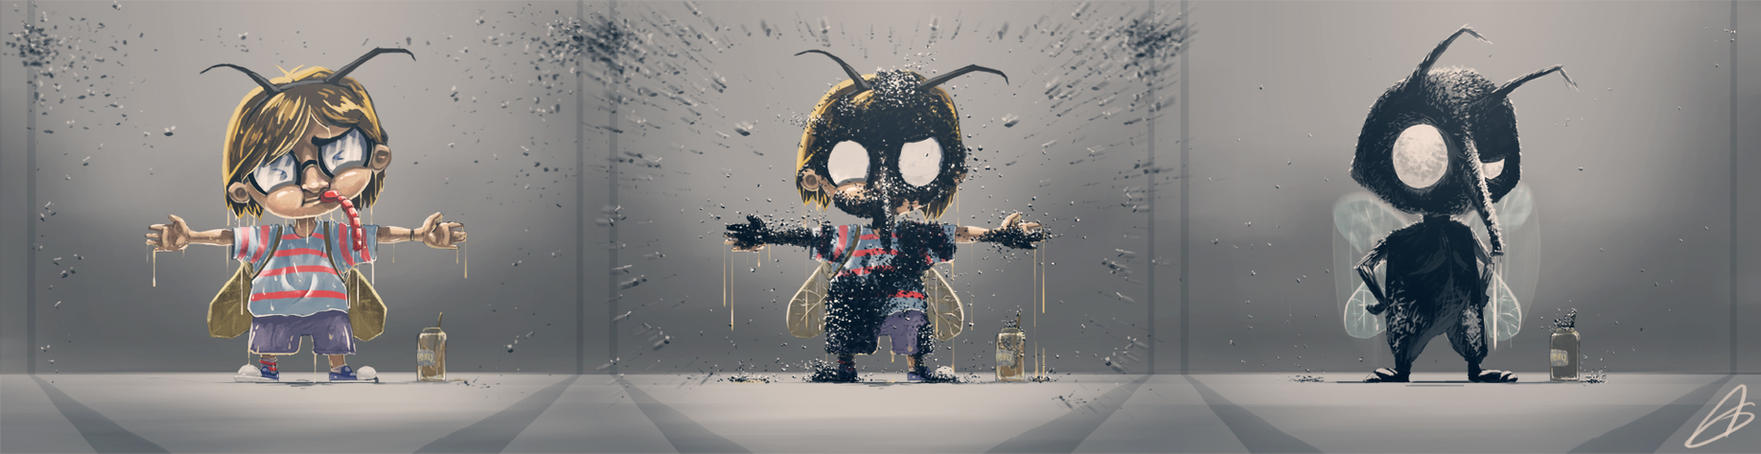 The Transformation Challenge The Fly Kid By Zeich On